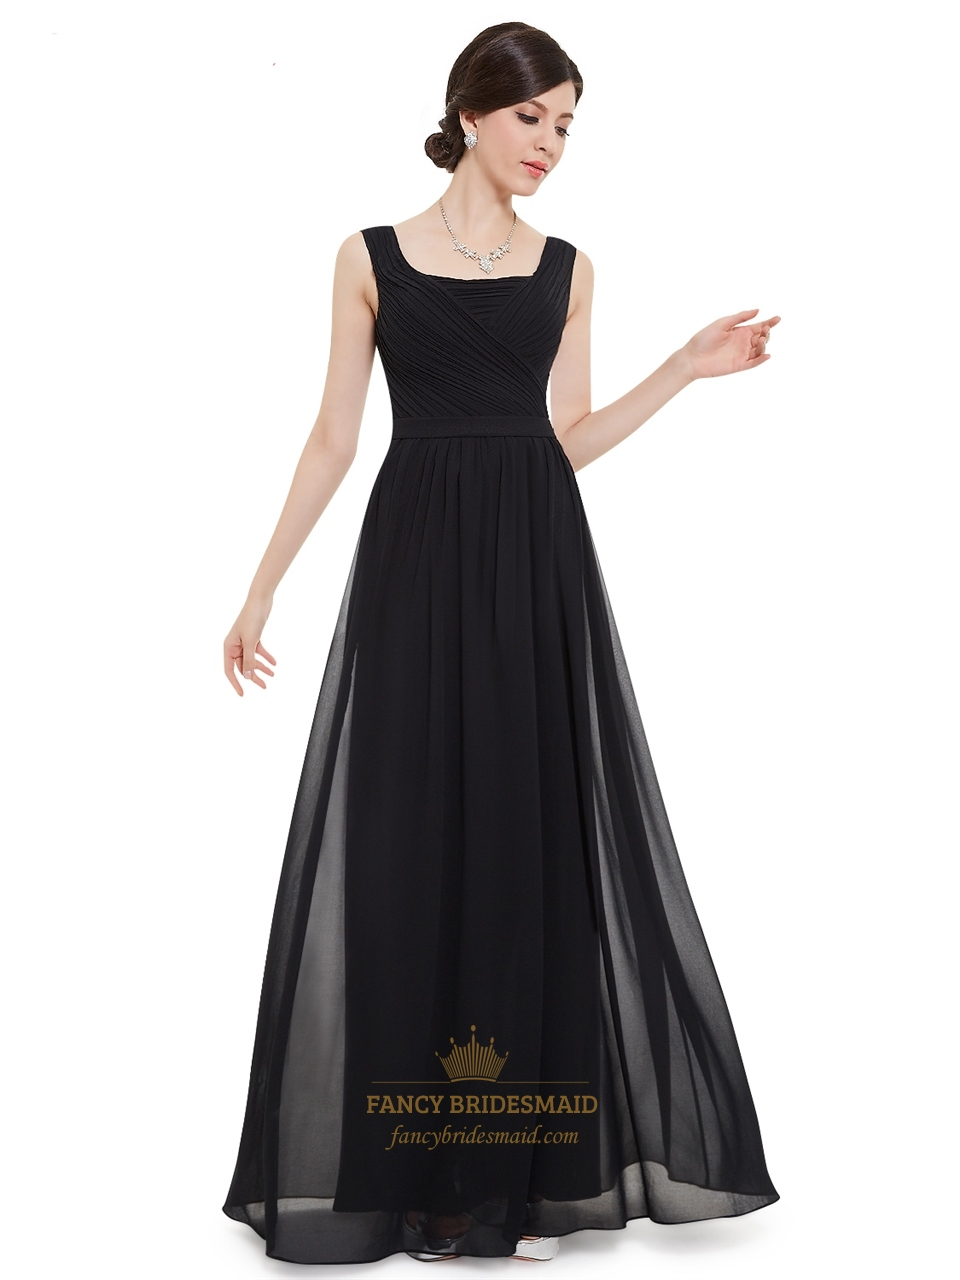 Black chiffon square neck floor length bridesmaid dress with pleated black chiffon square neck floor length bridesmaid dress with pleated bodice ombrellifo Image collections